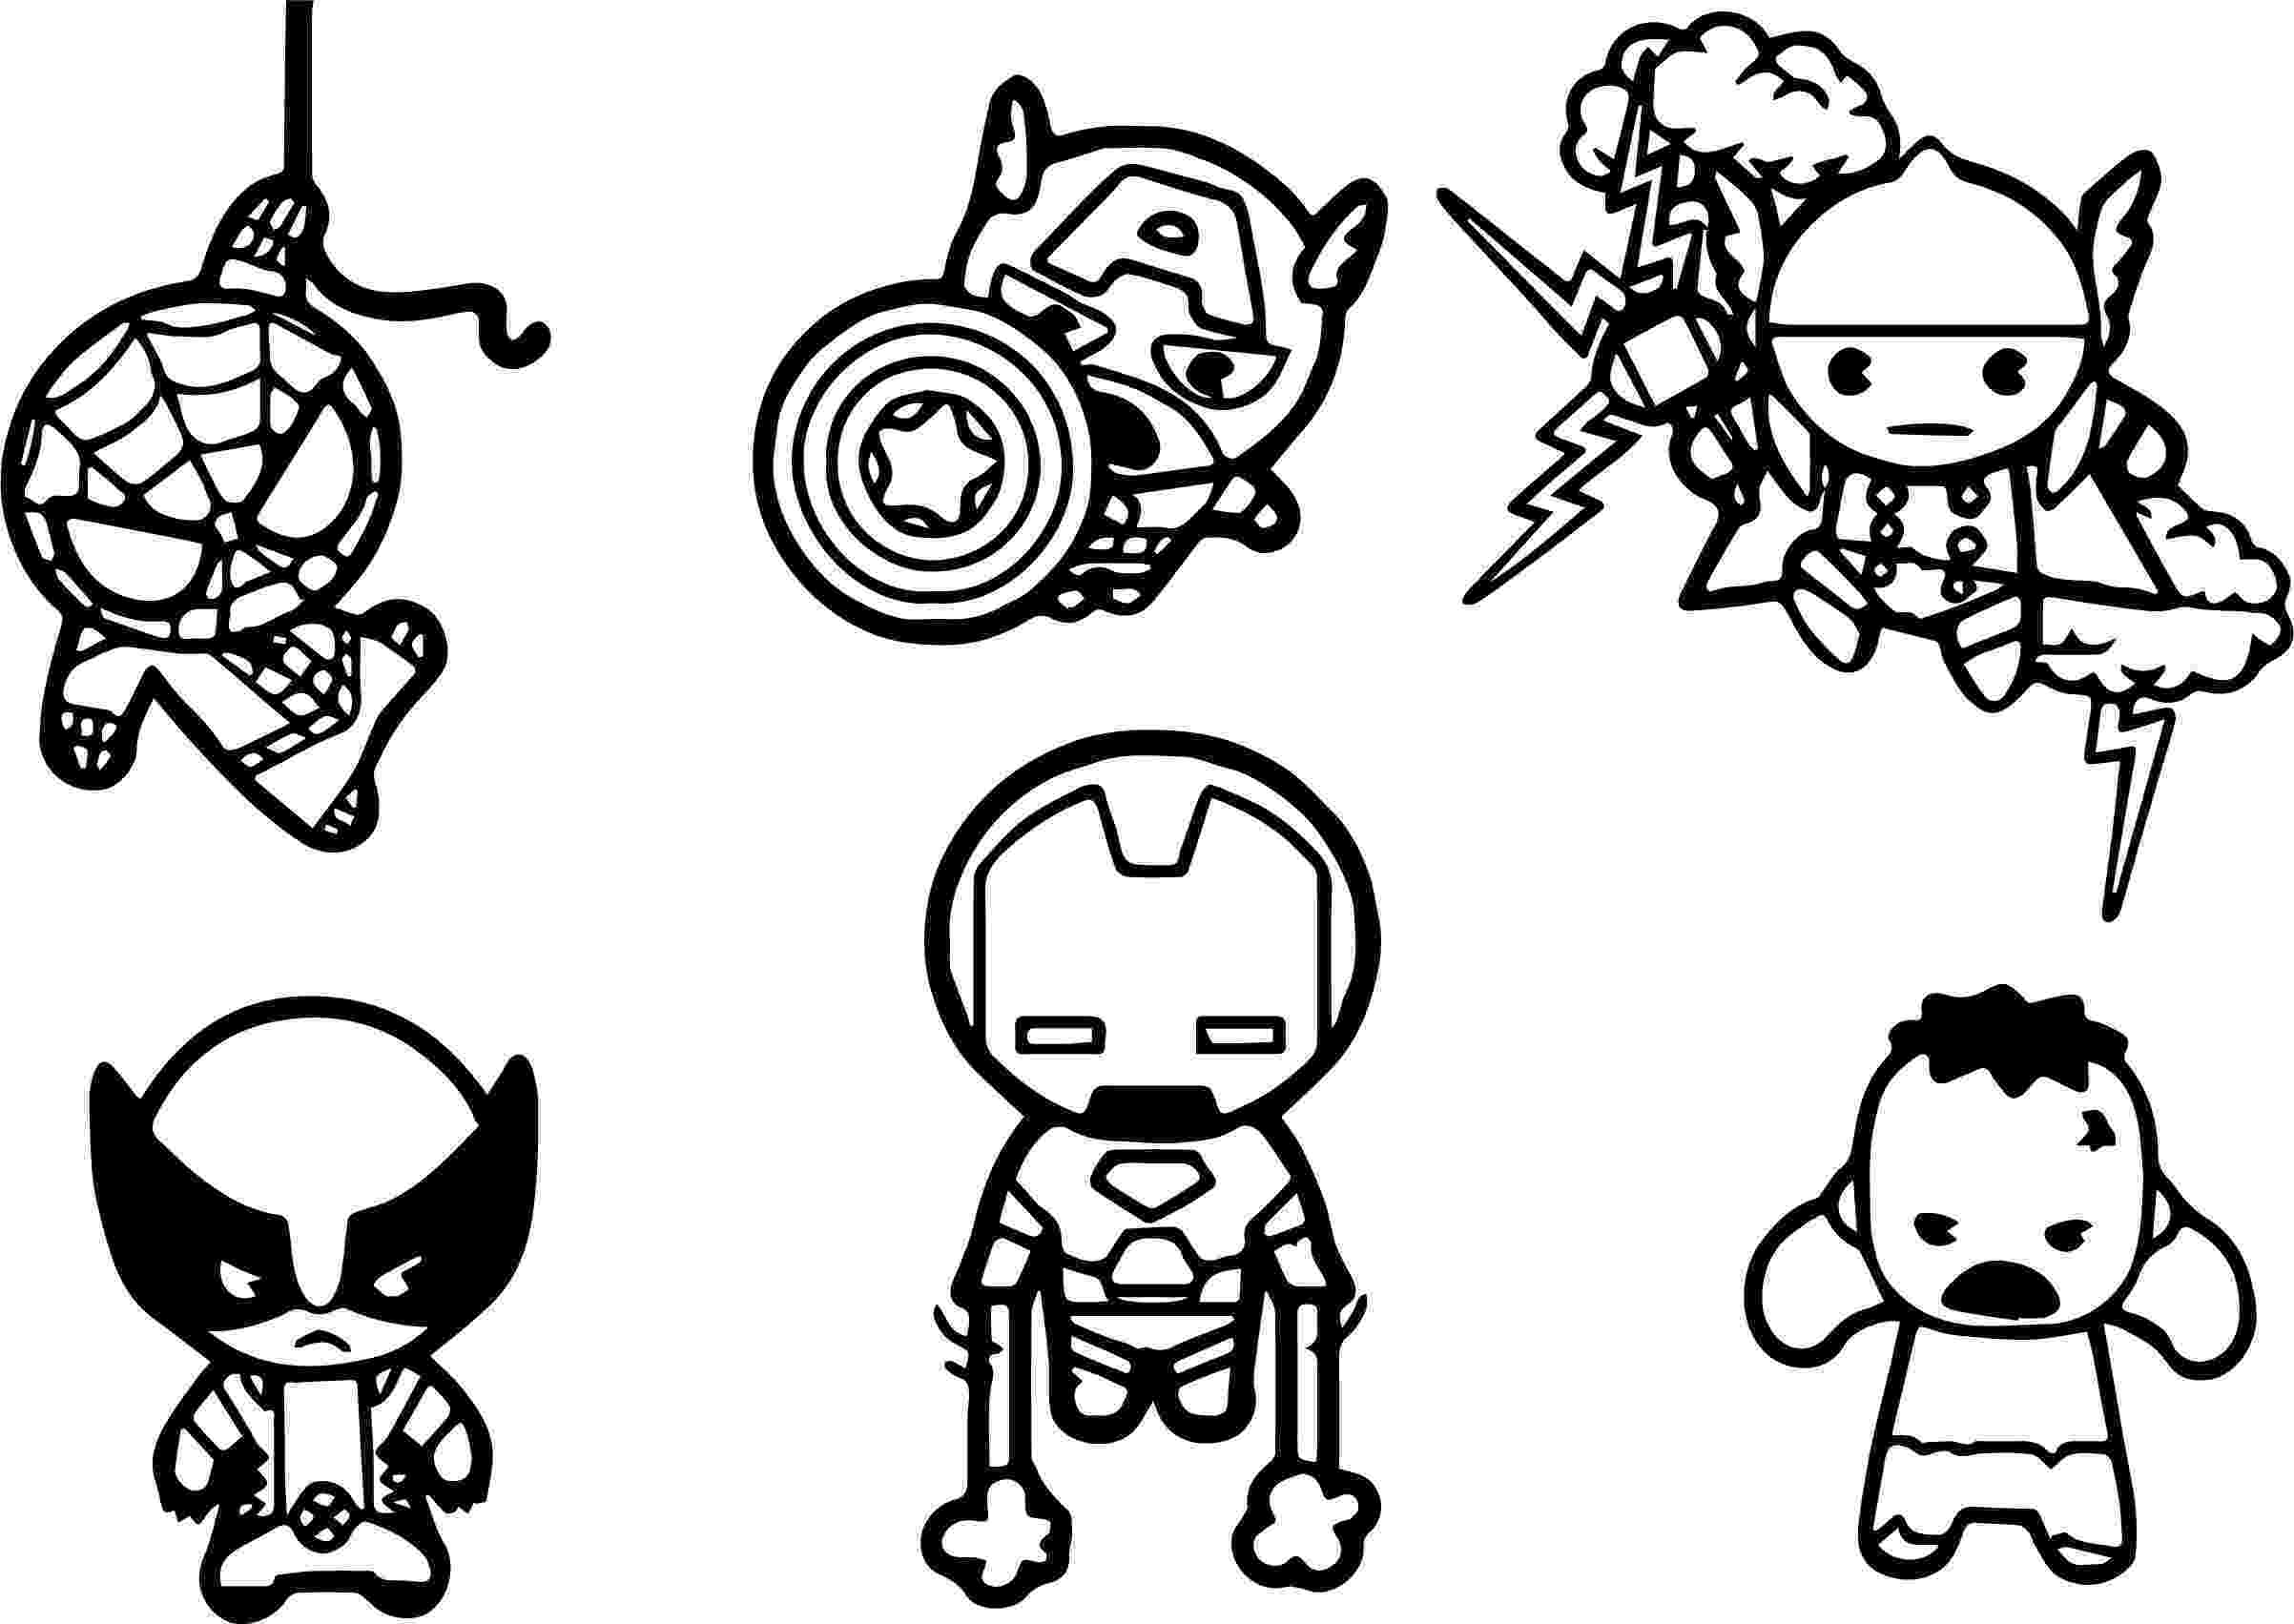 avengers color pages avengers coloring pages best coloring pages for kids pages color avengers 1 1